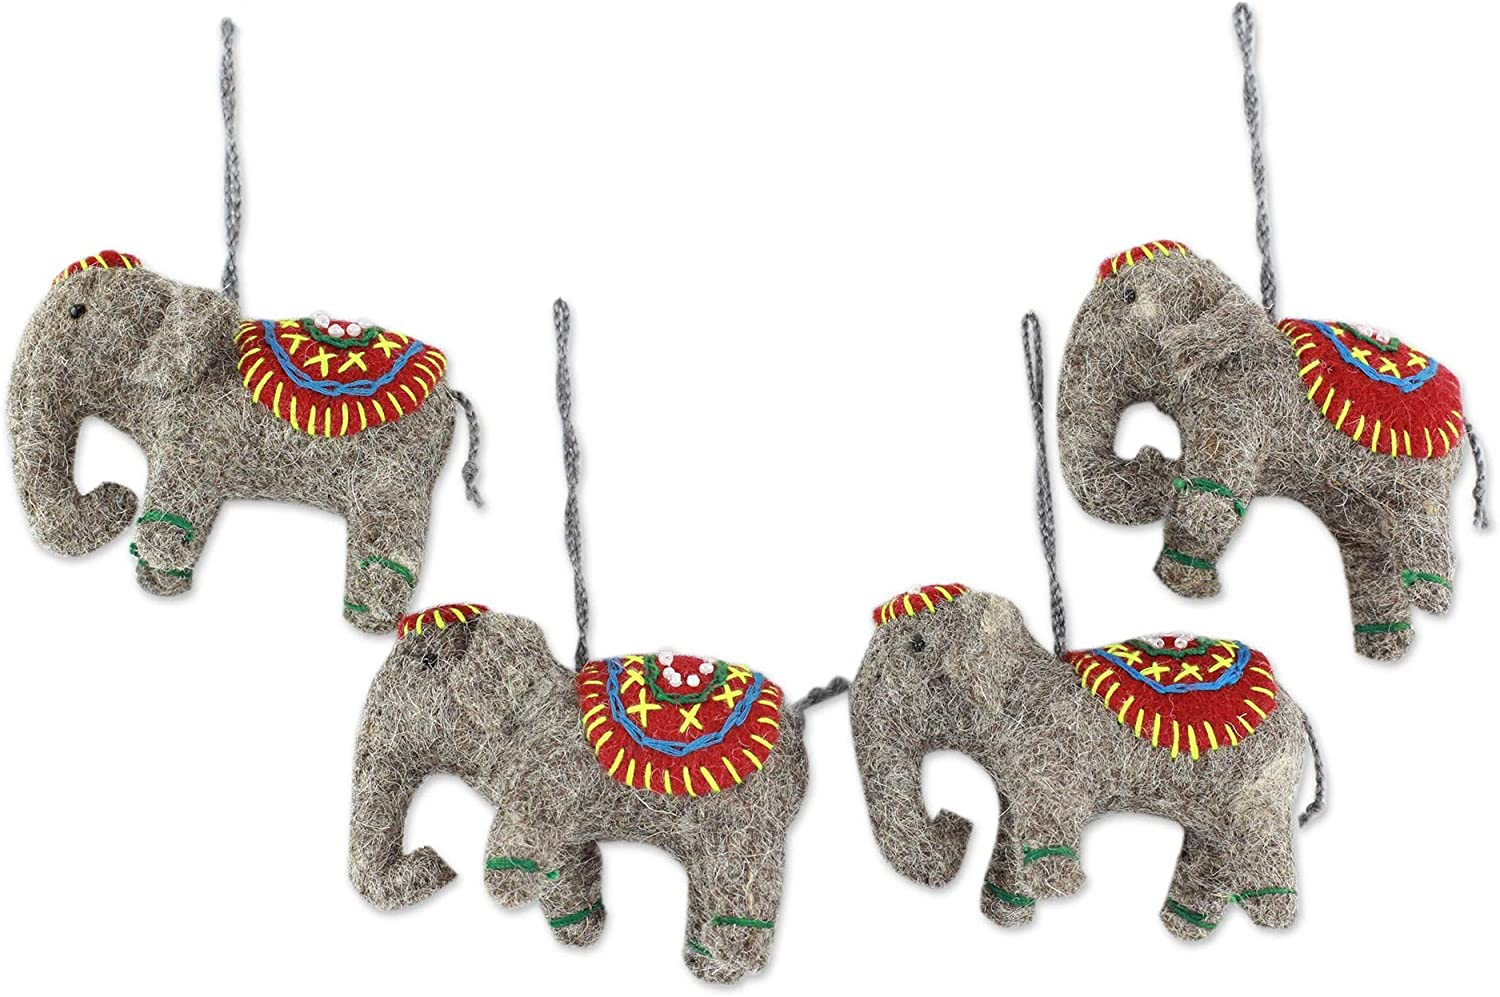 NOVICA Handmade Felted Wool Hanging Holiday Ornaments, Elephants in Red' (Set of 4)